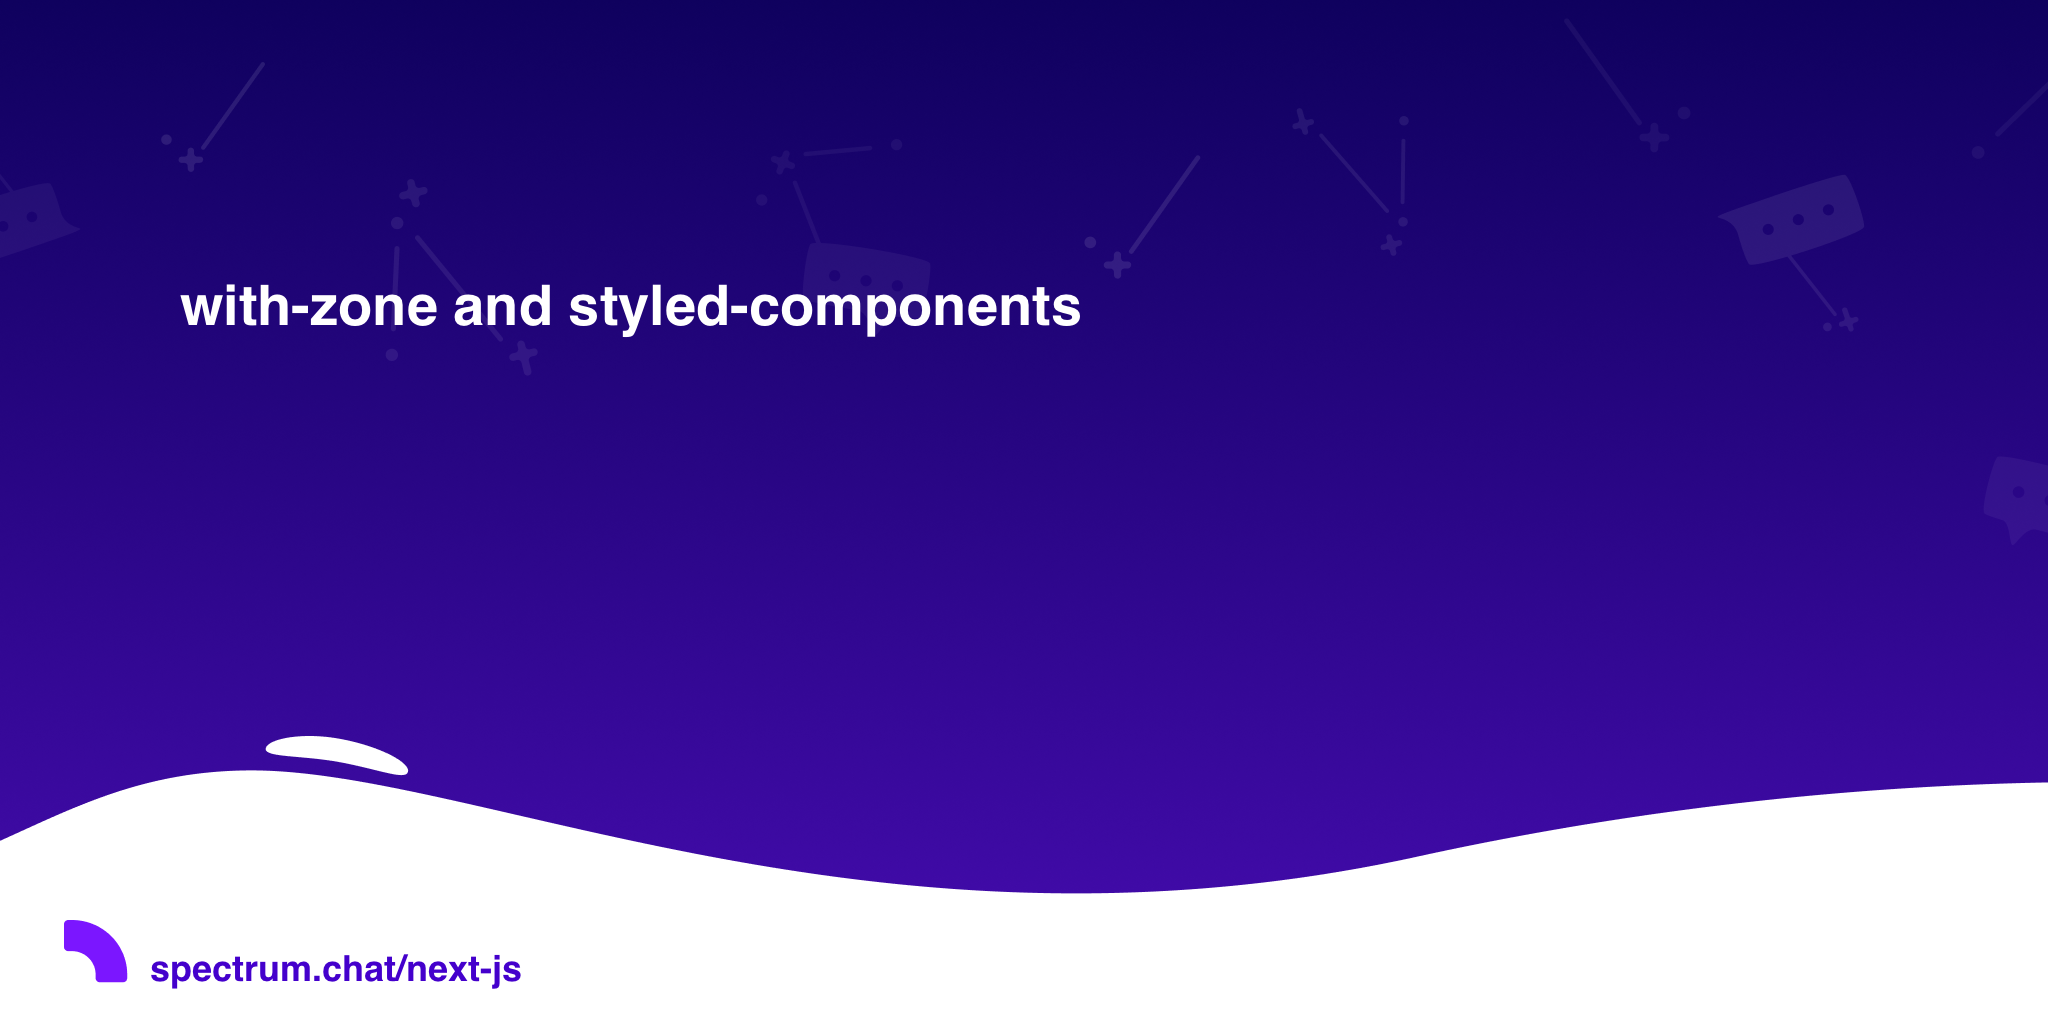 with-zone and styled-components · Next js